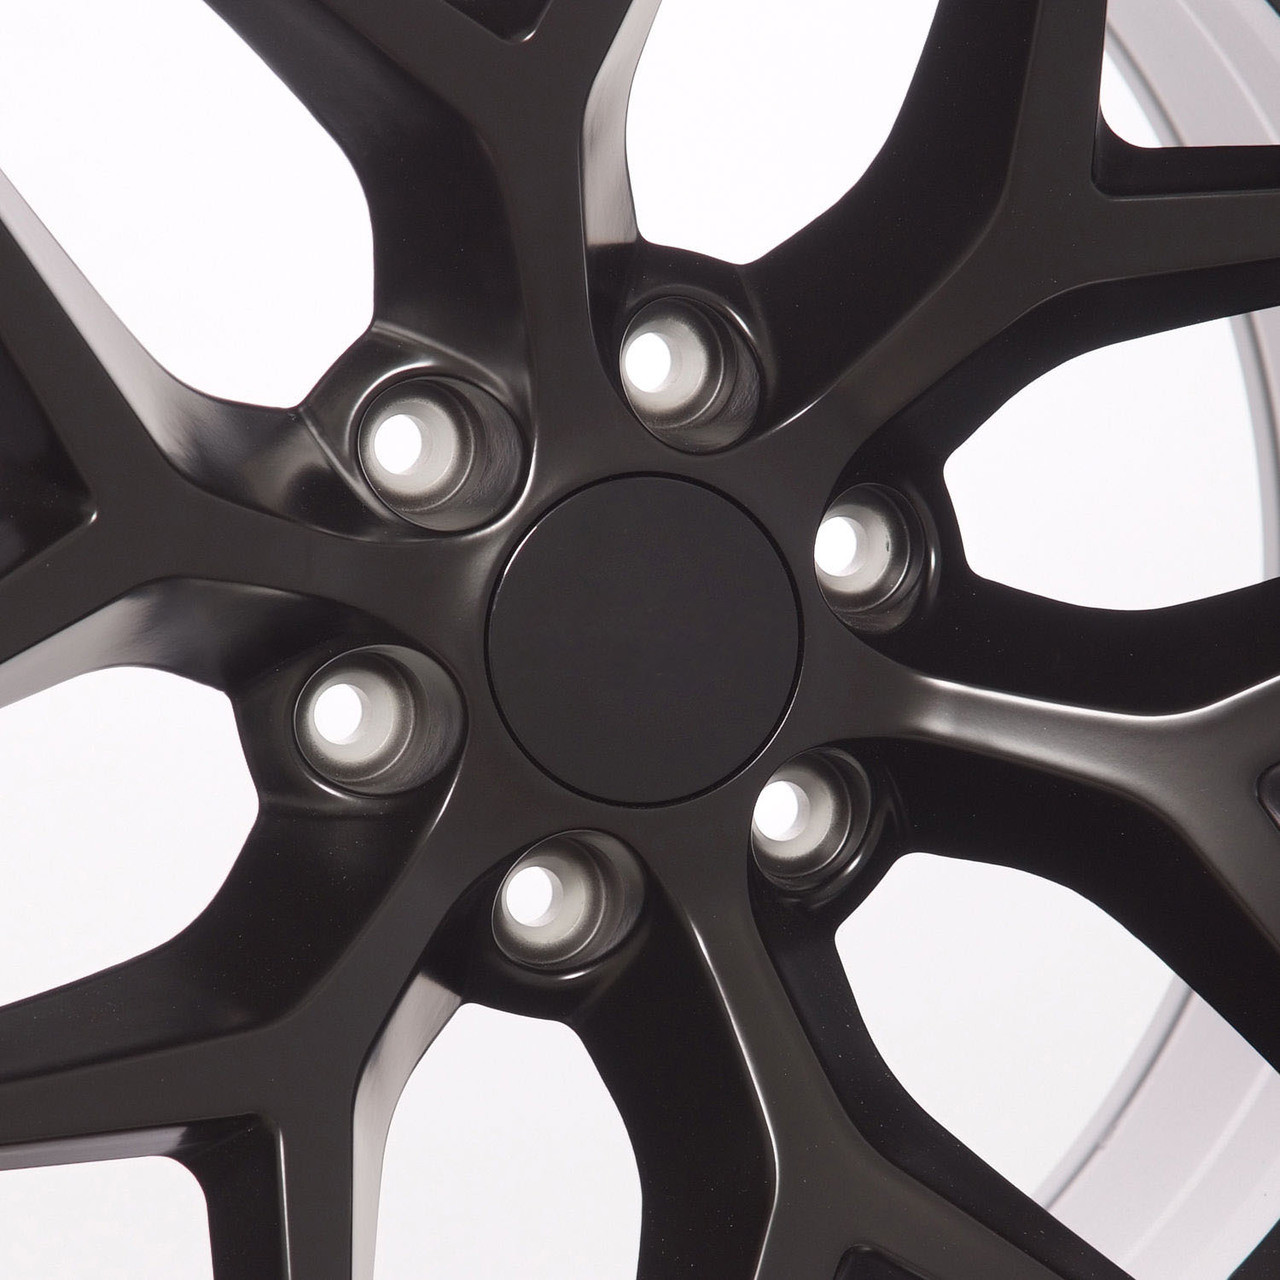 "Satin Matte Black 20"" Snowflake Wheels with Goodyear Tires for Chevy Silverado, Tahoe, Suburban - New Set of 4"